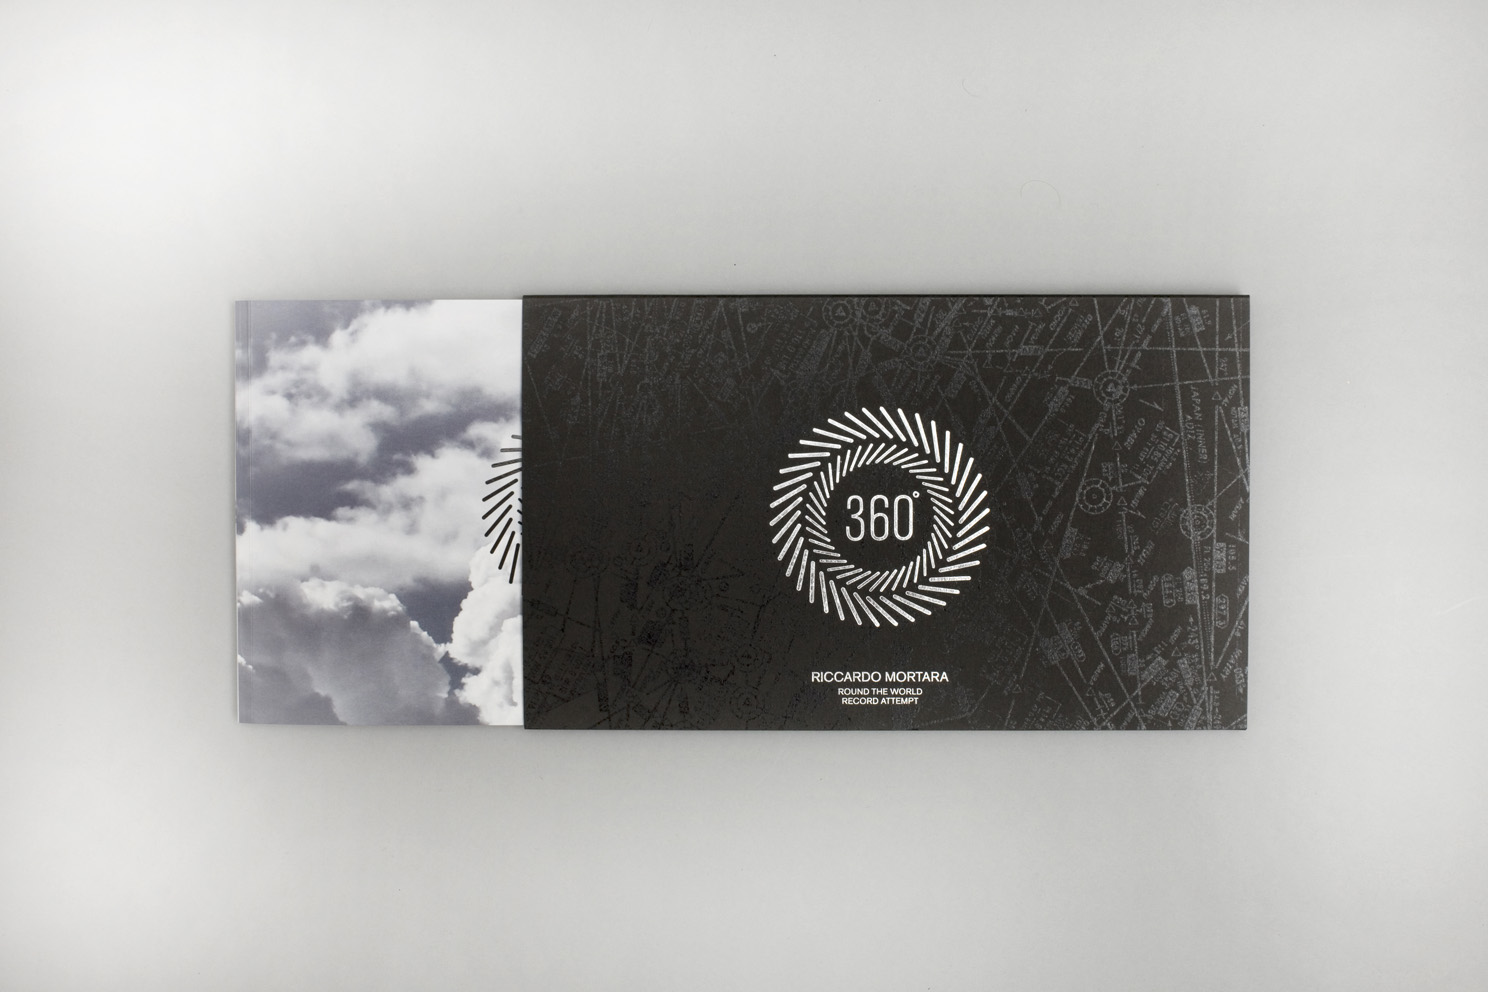 Cover and book insert for the round the world fastest flight record attempt by Riccardo Mortara